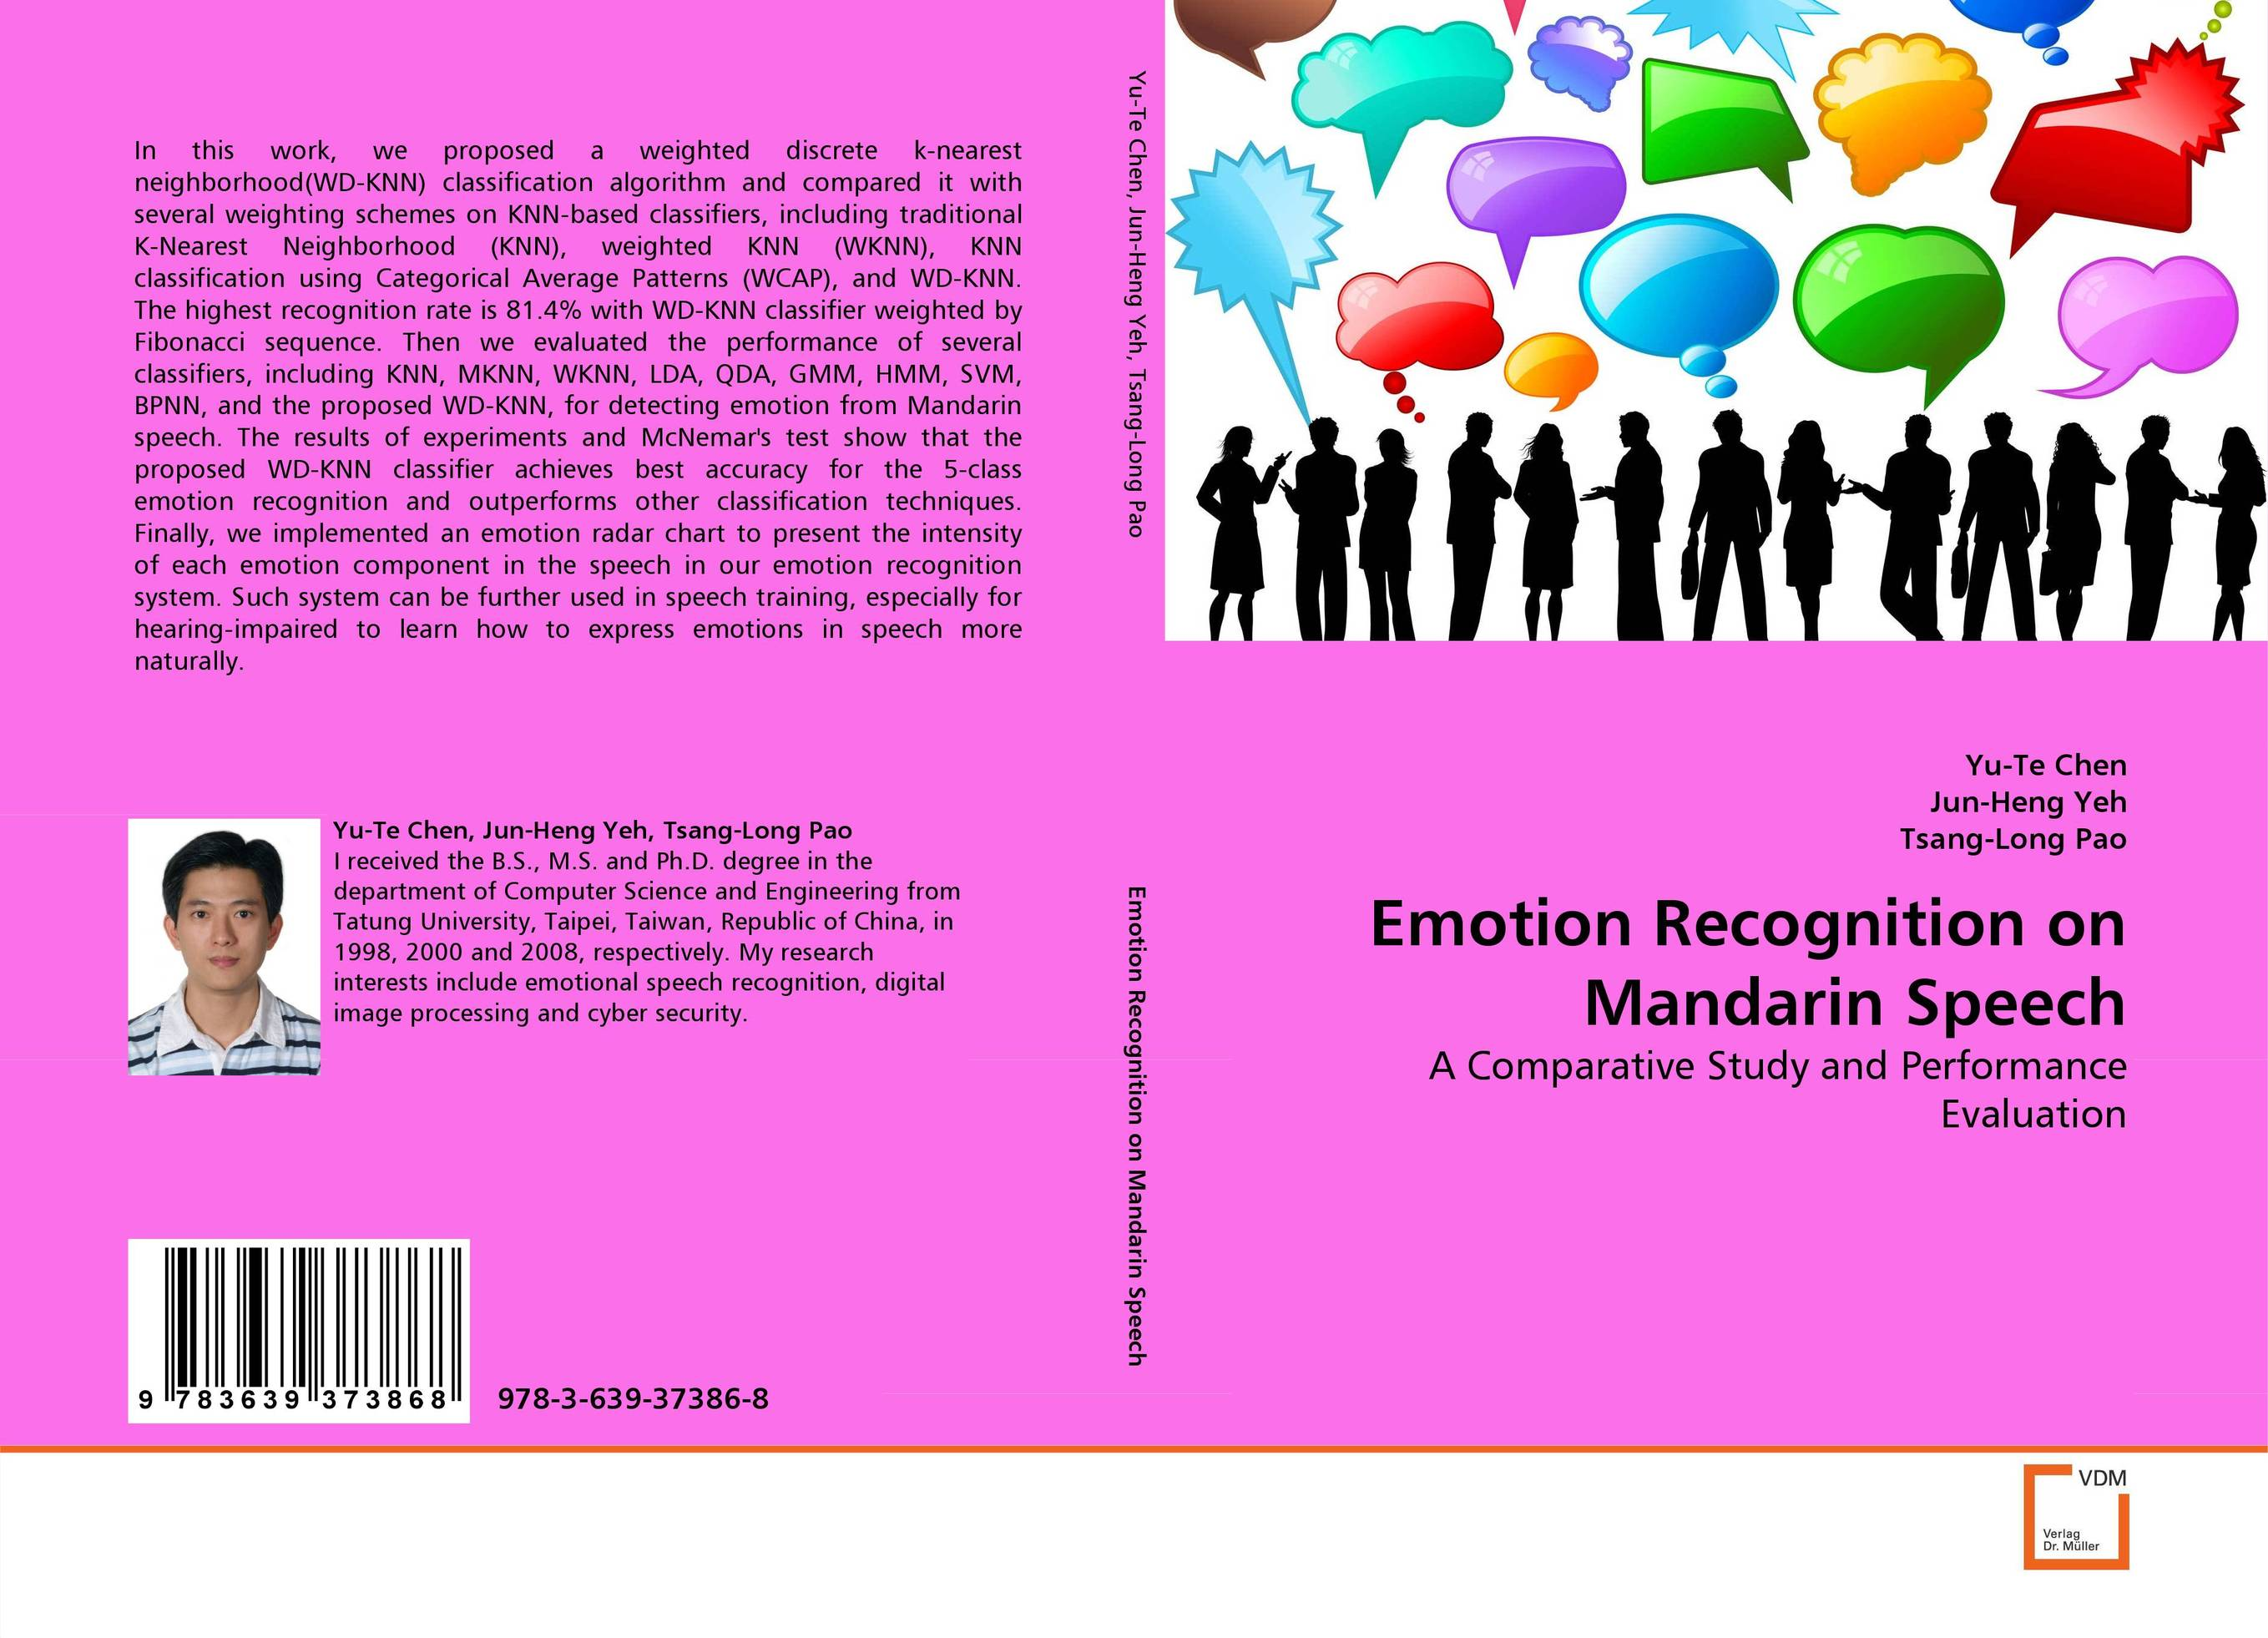 Emotion Recognition on Mandarin Speech exponentially weighted moving average control chart